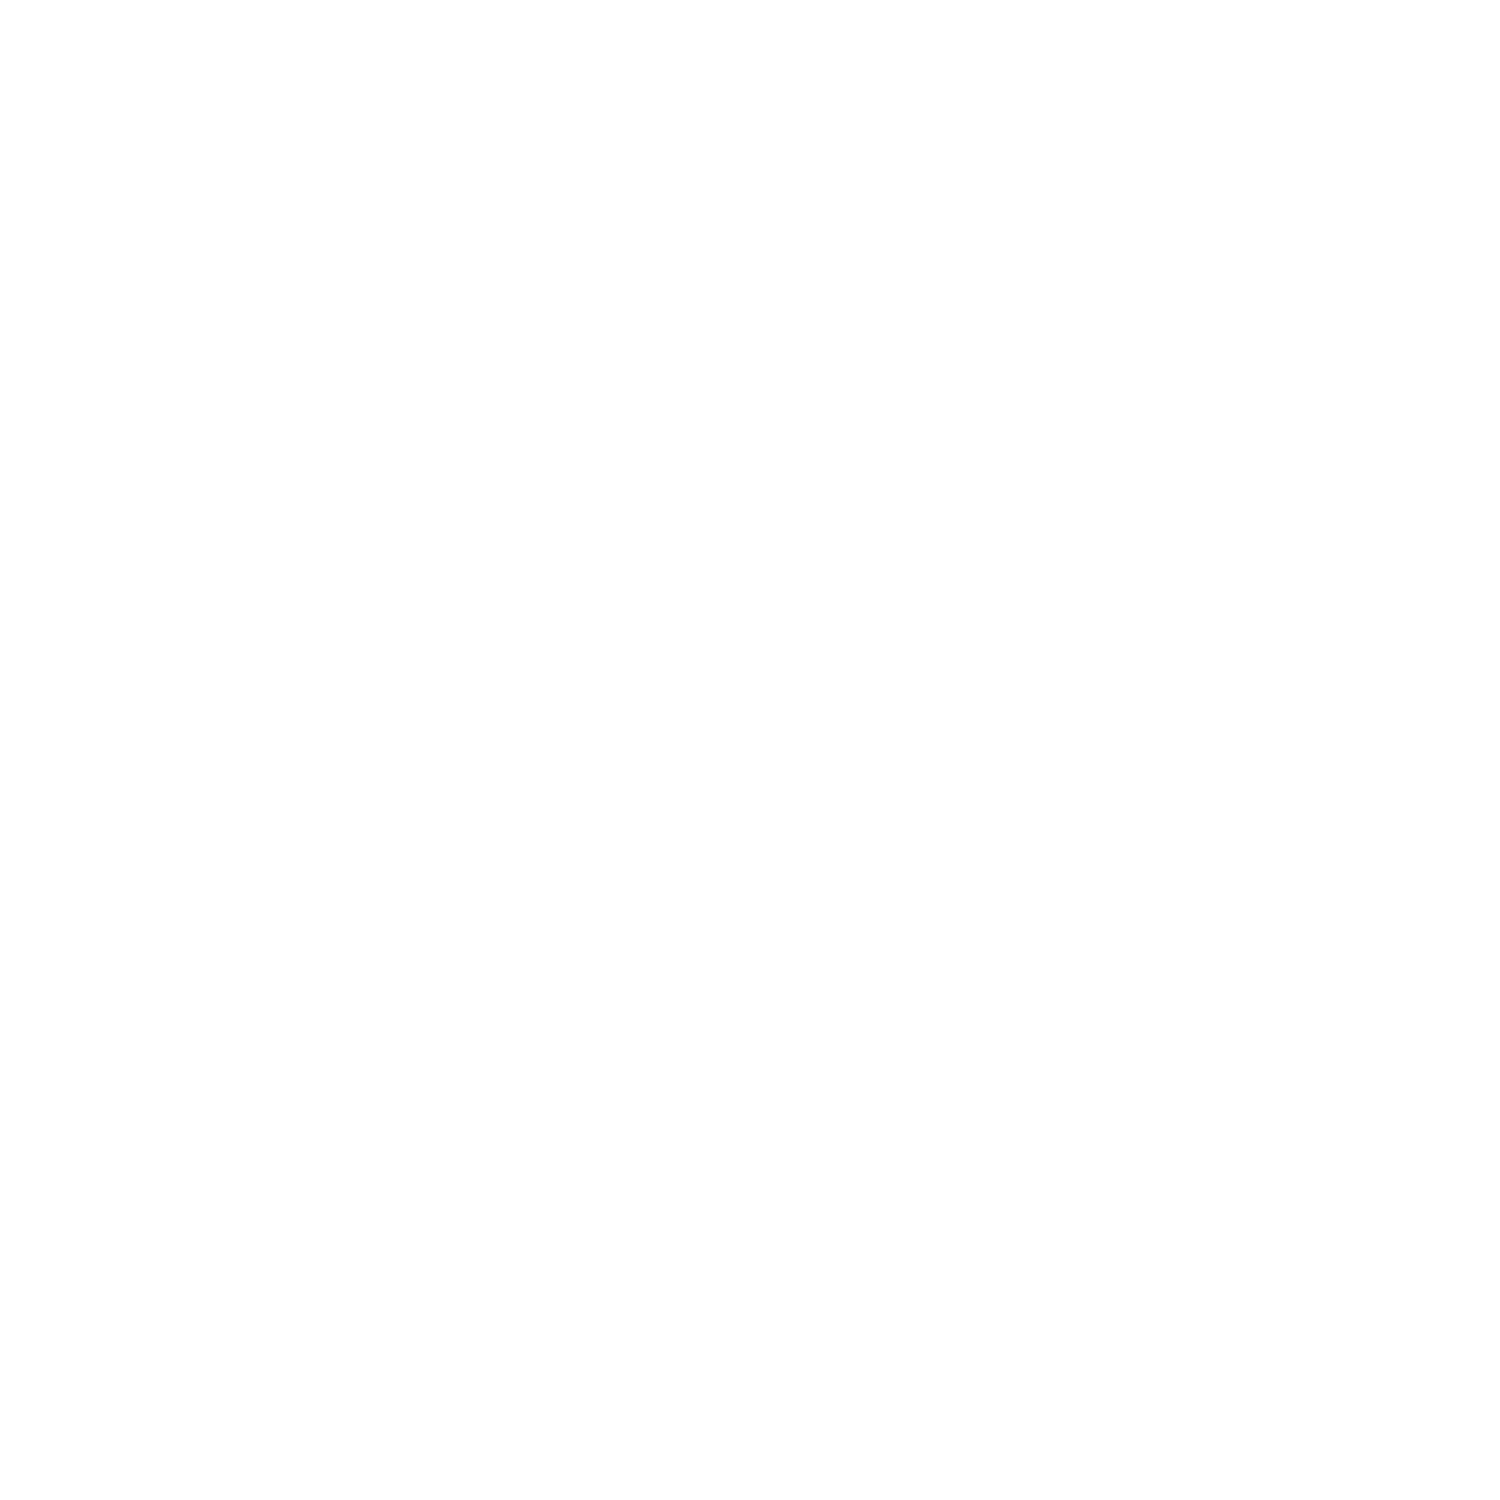 Photos by Salomé